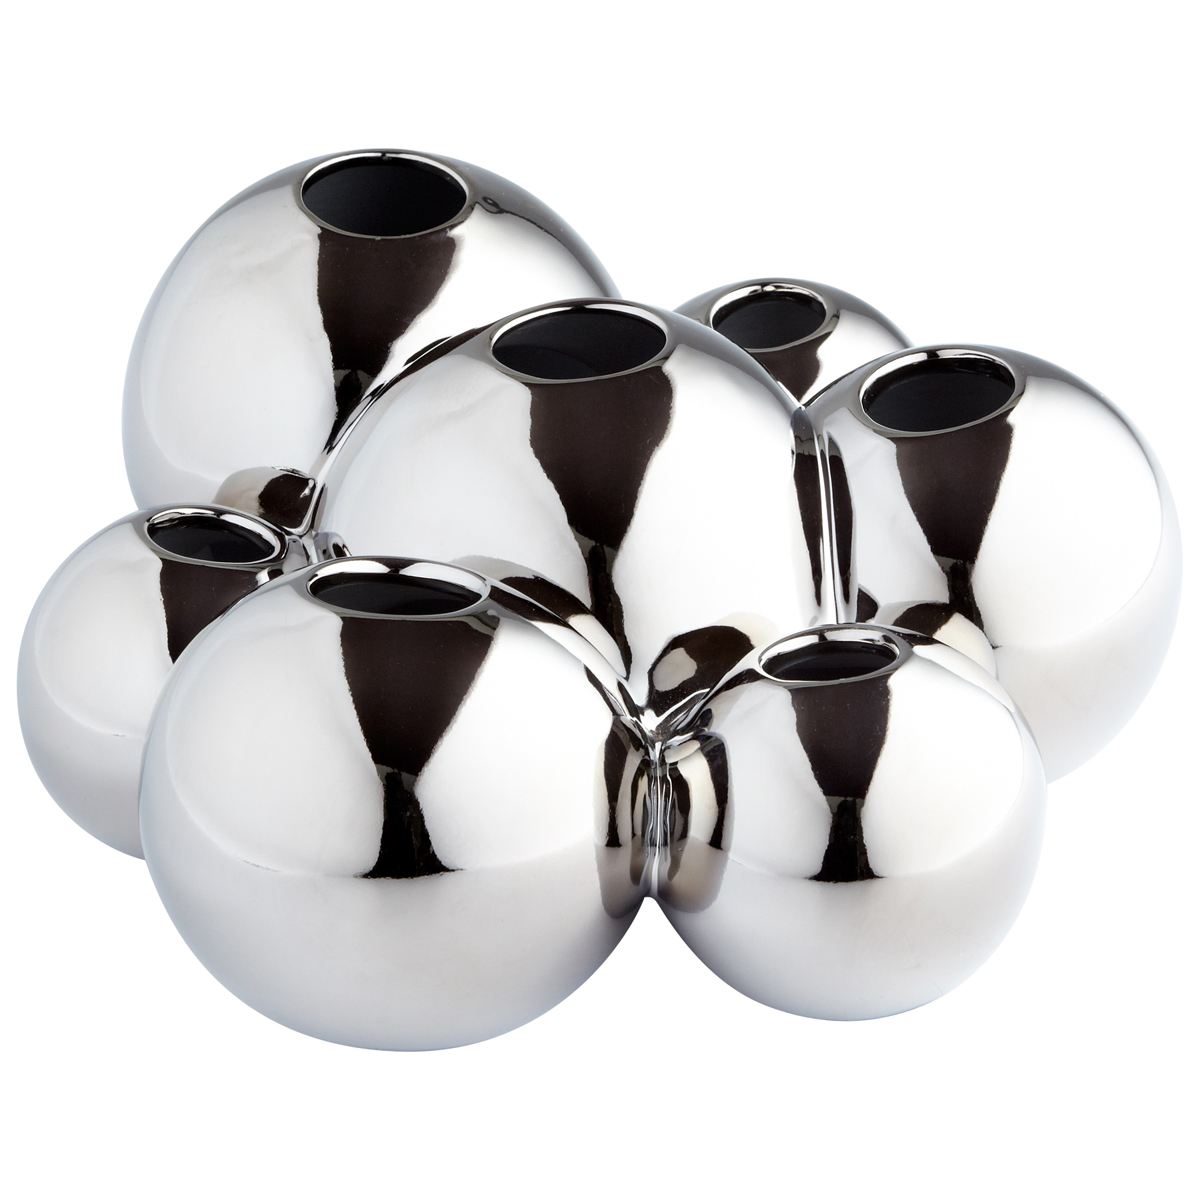 polished-chrome-home-decor - lighting fixtures, lights, and home